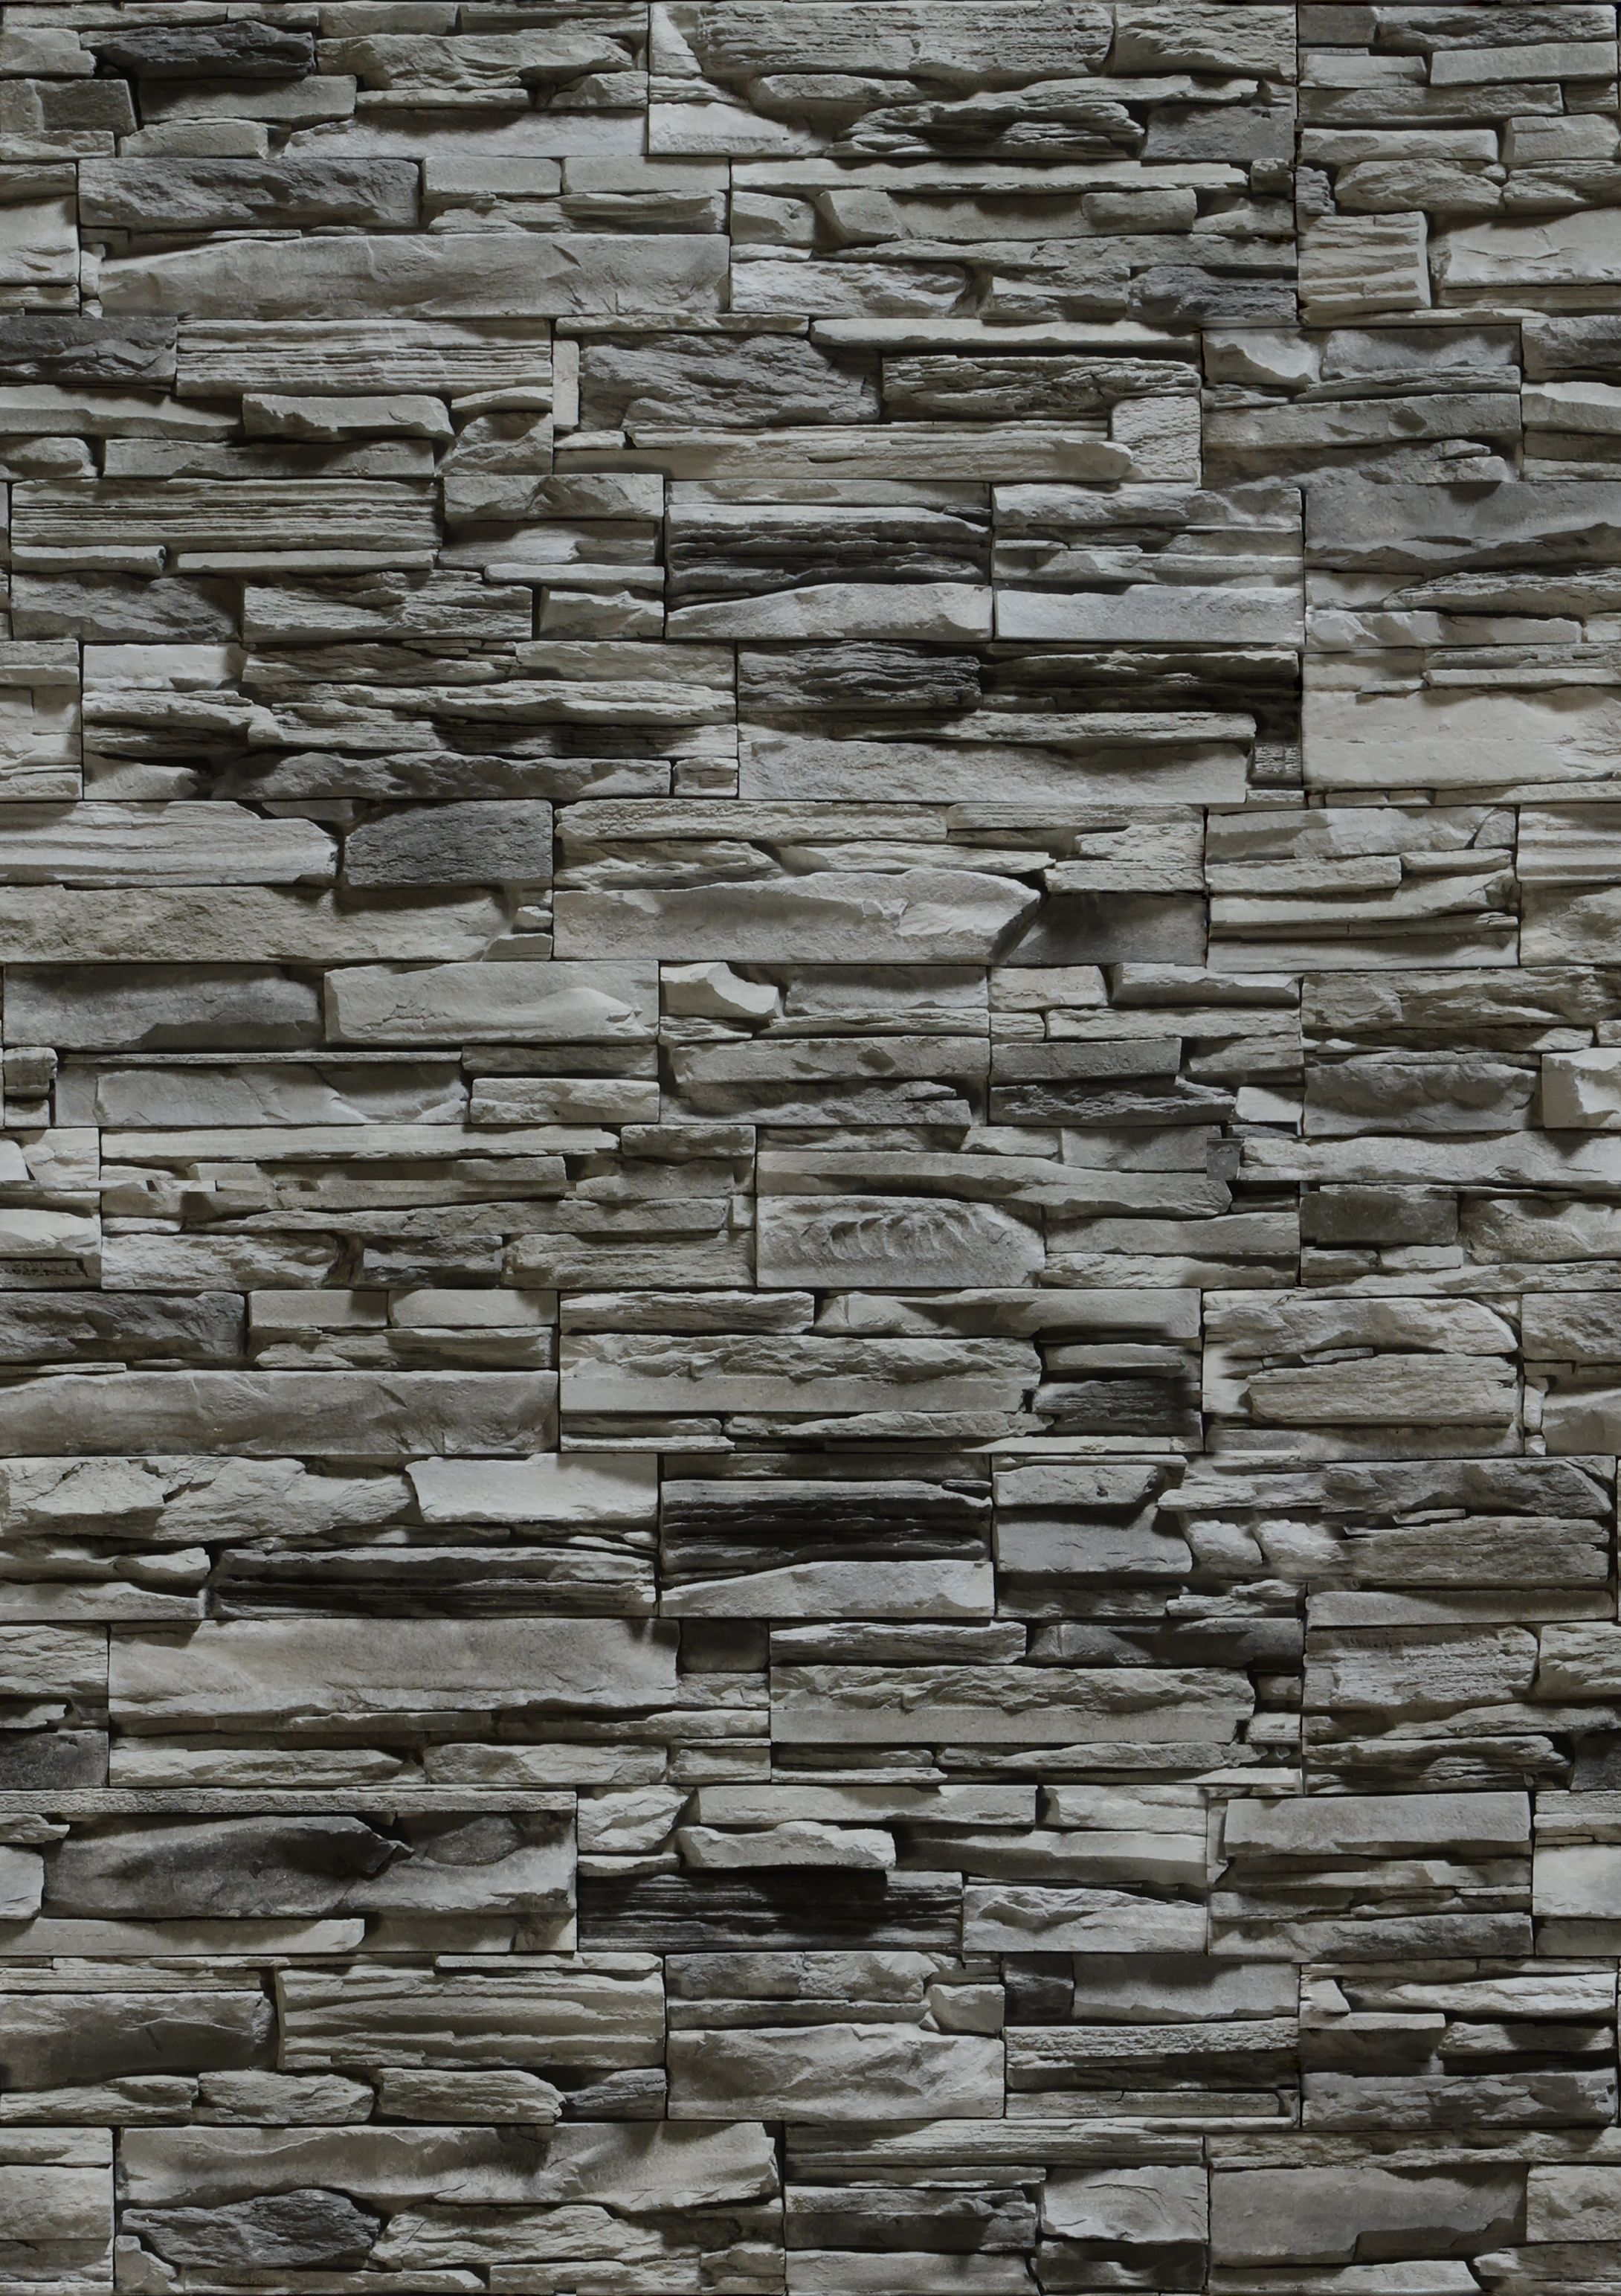 Sandstone wall sandstone wall -  Stone Wall Texture Stone Stone Wall Download Background Stone Background